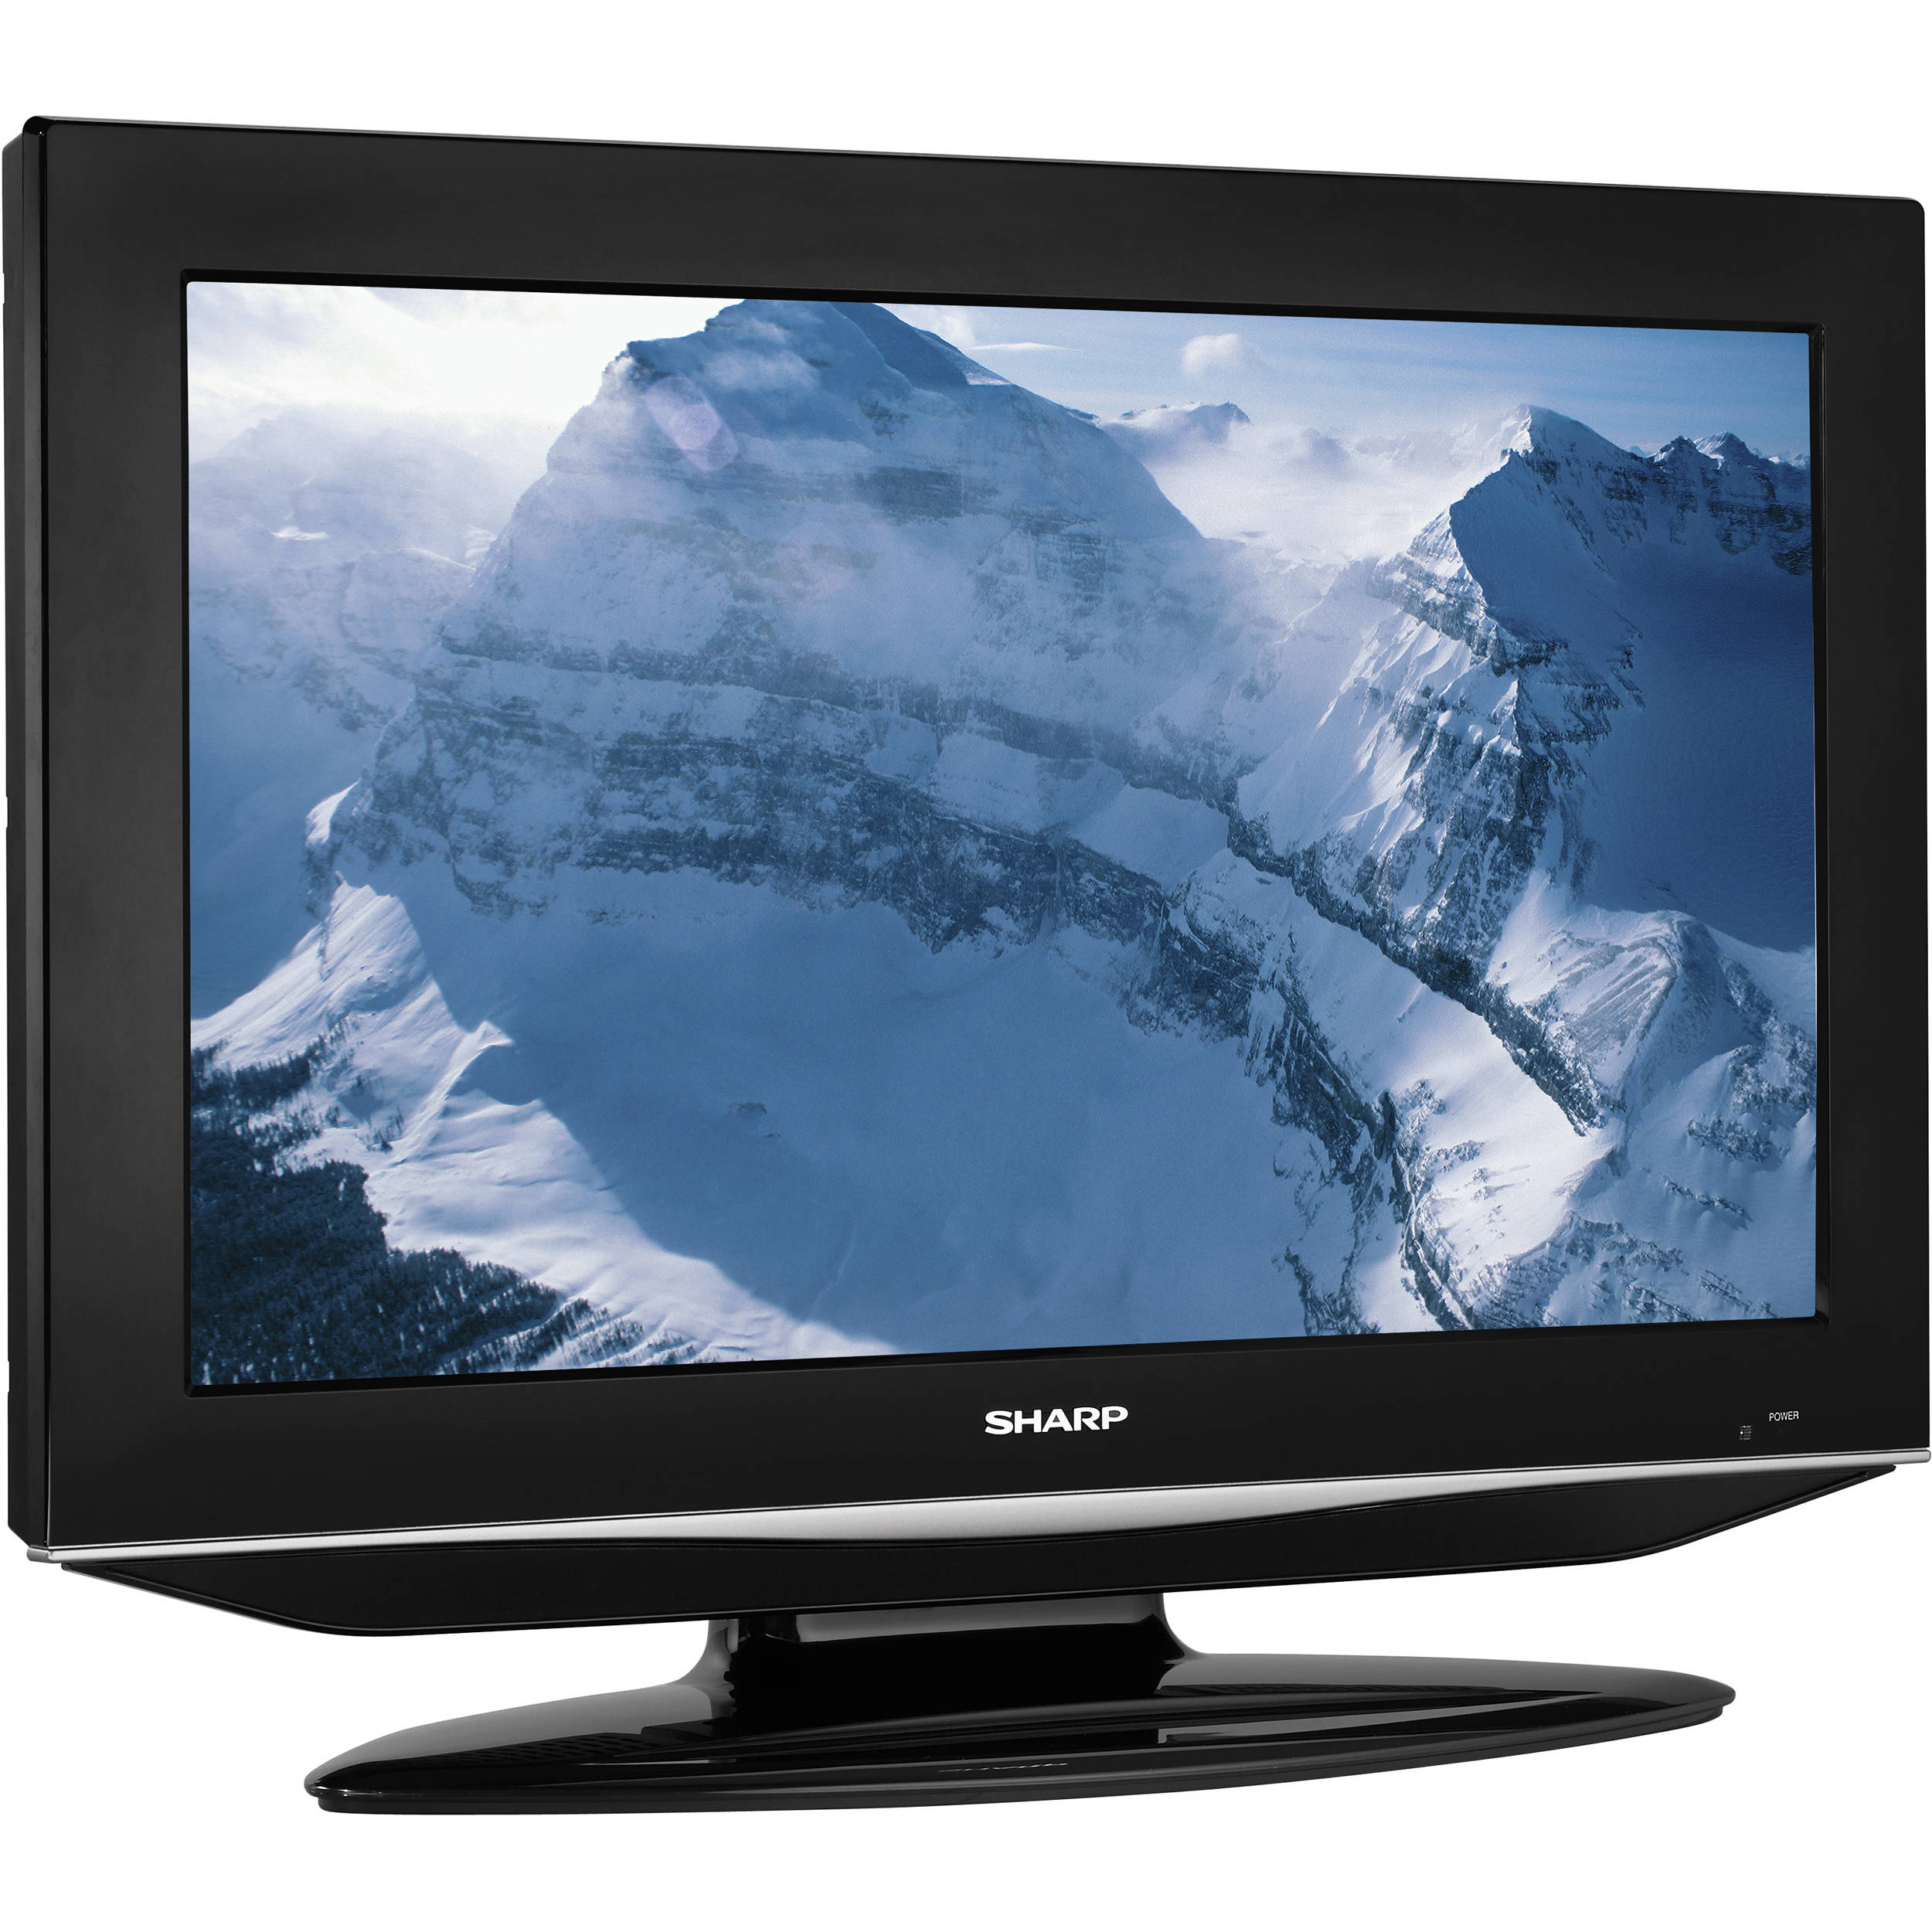 sharp lc 32dv27ut 32 lcd tv with dvd player lc32dv27ut b h. Black Bedroom Furniture Sets. Home Design Ideas